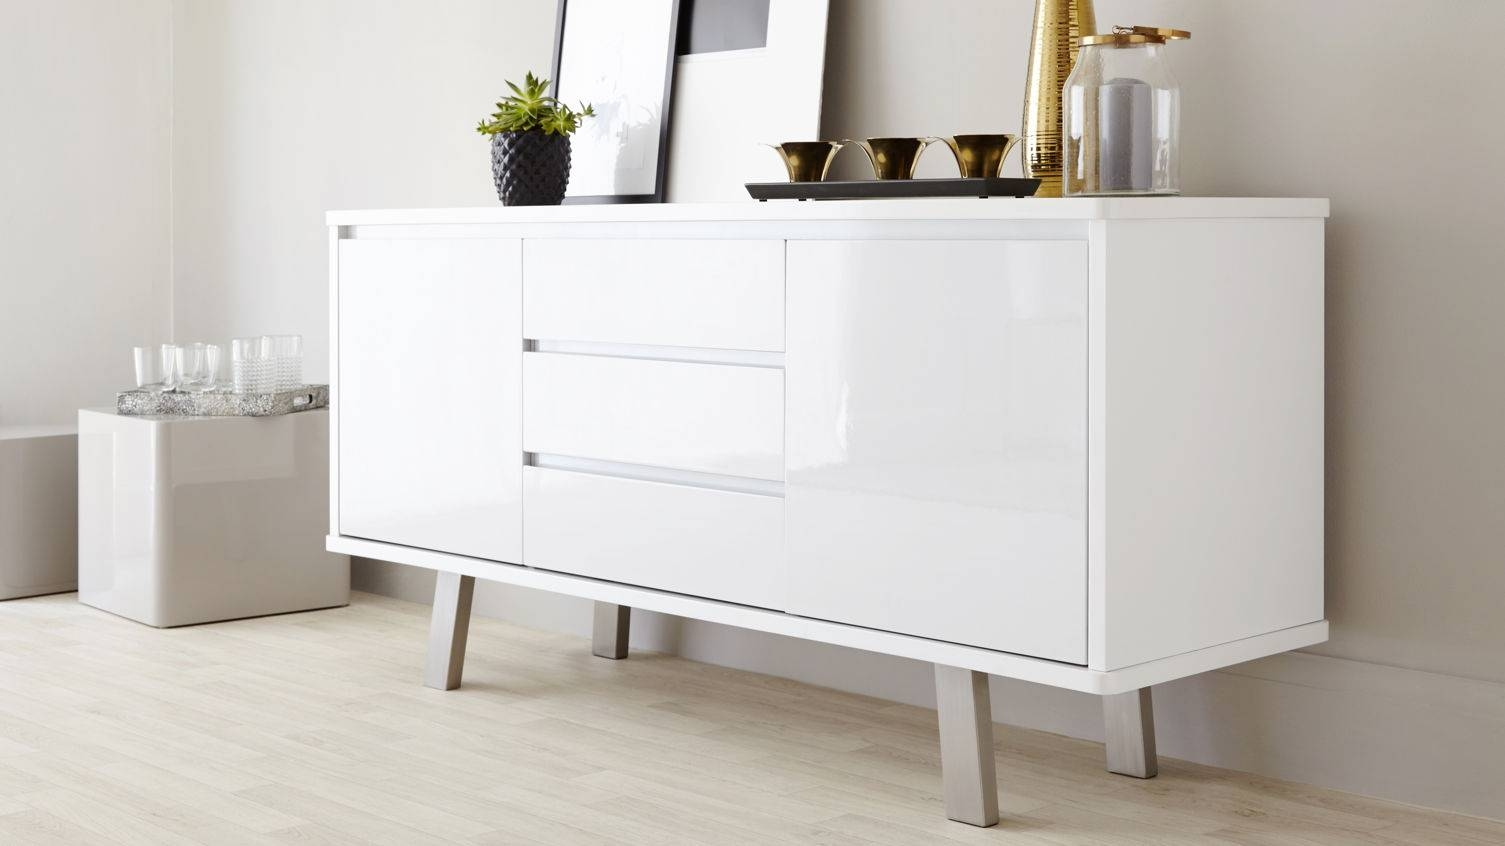 White Gloss Sideboards For Dining Room - Decor within Gloss White Sideboards (Image 30 of 30)